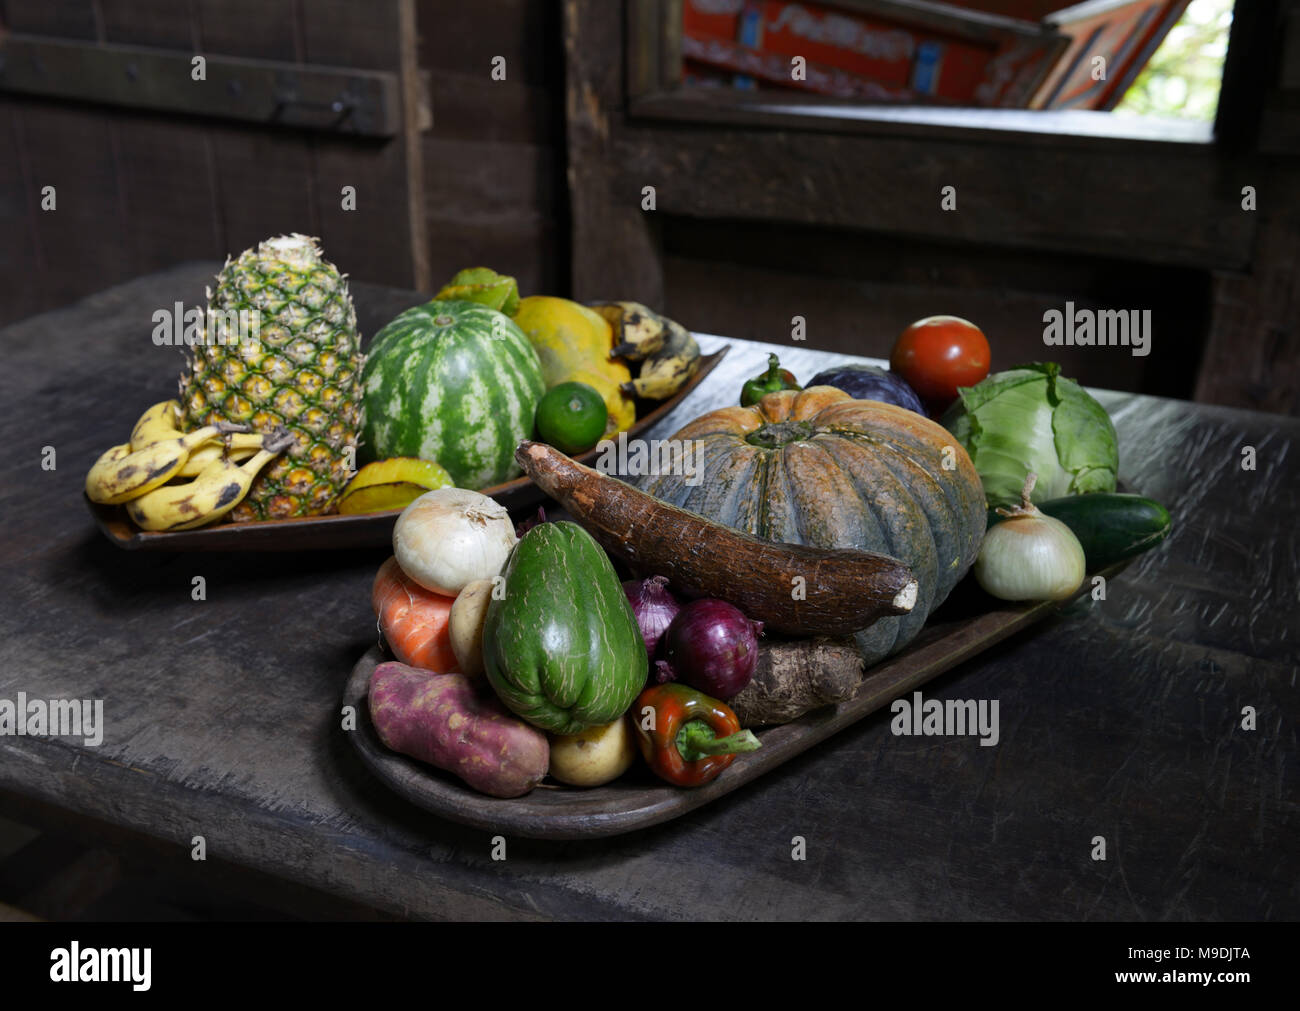 Traditional fruits and vegetables on a table in a home, Costa Rica - Stock Image